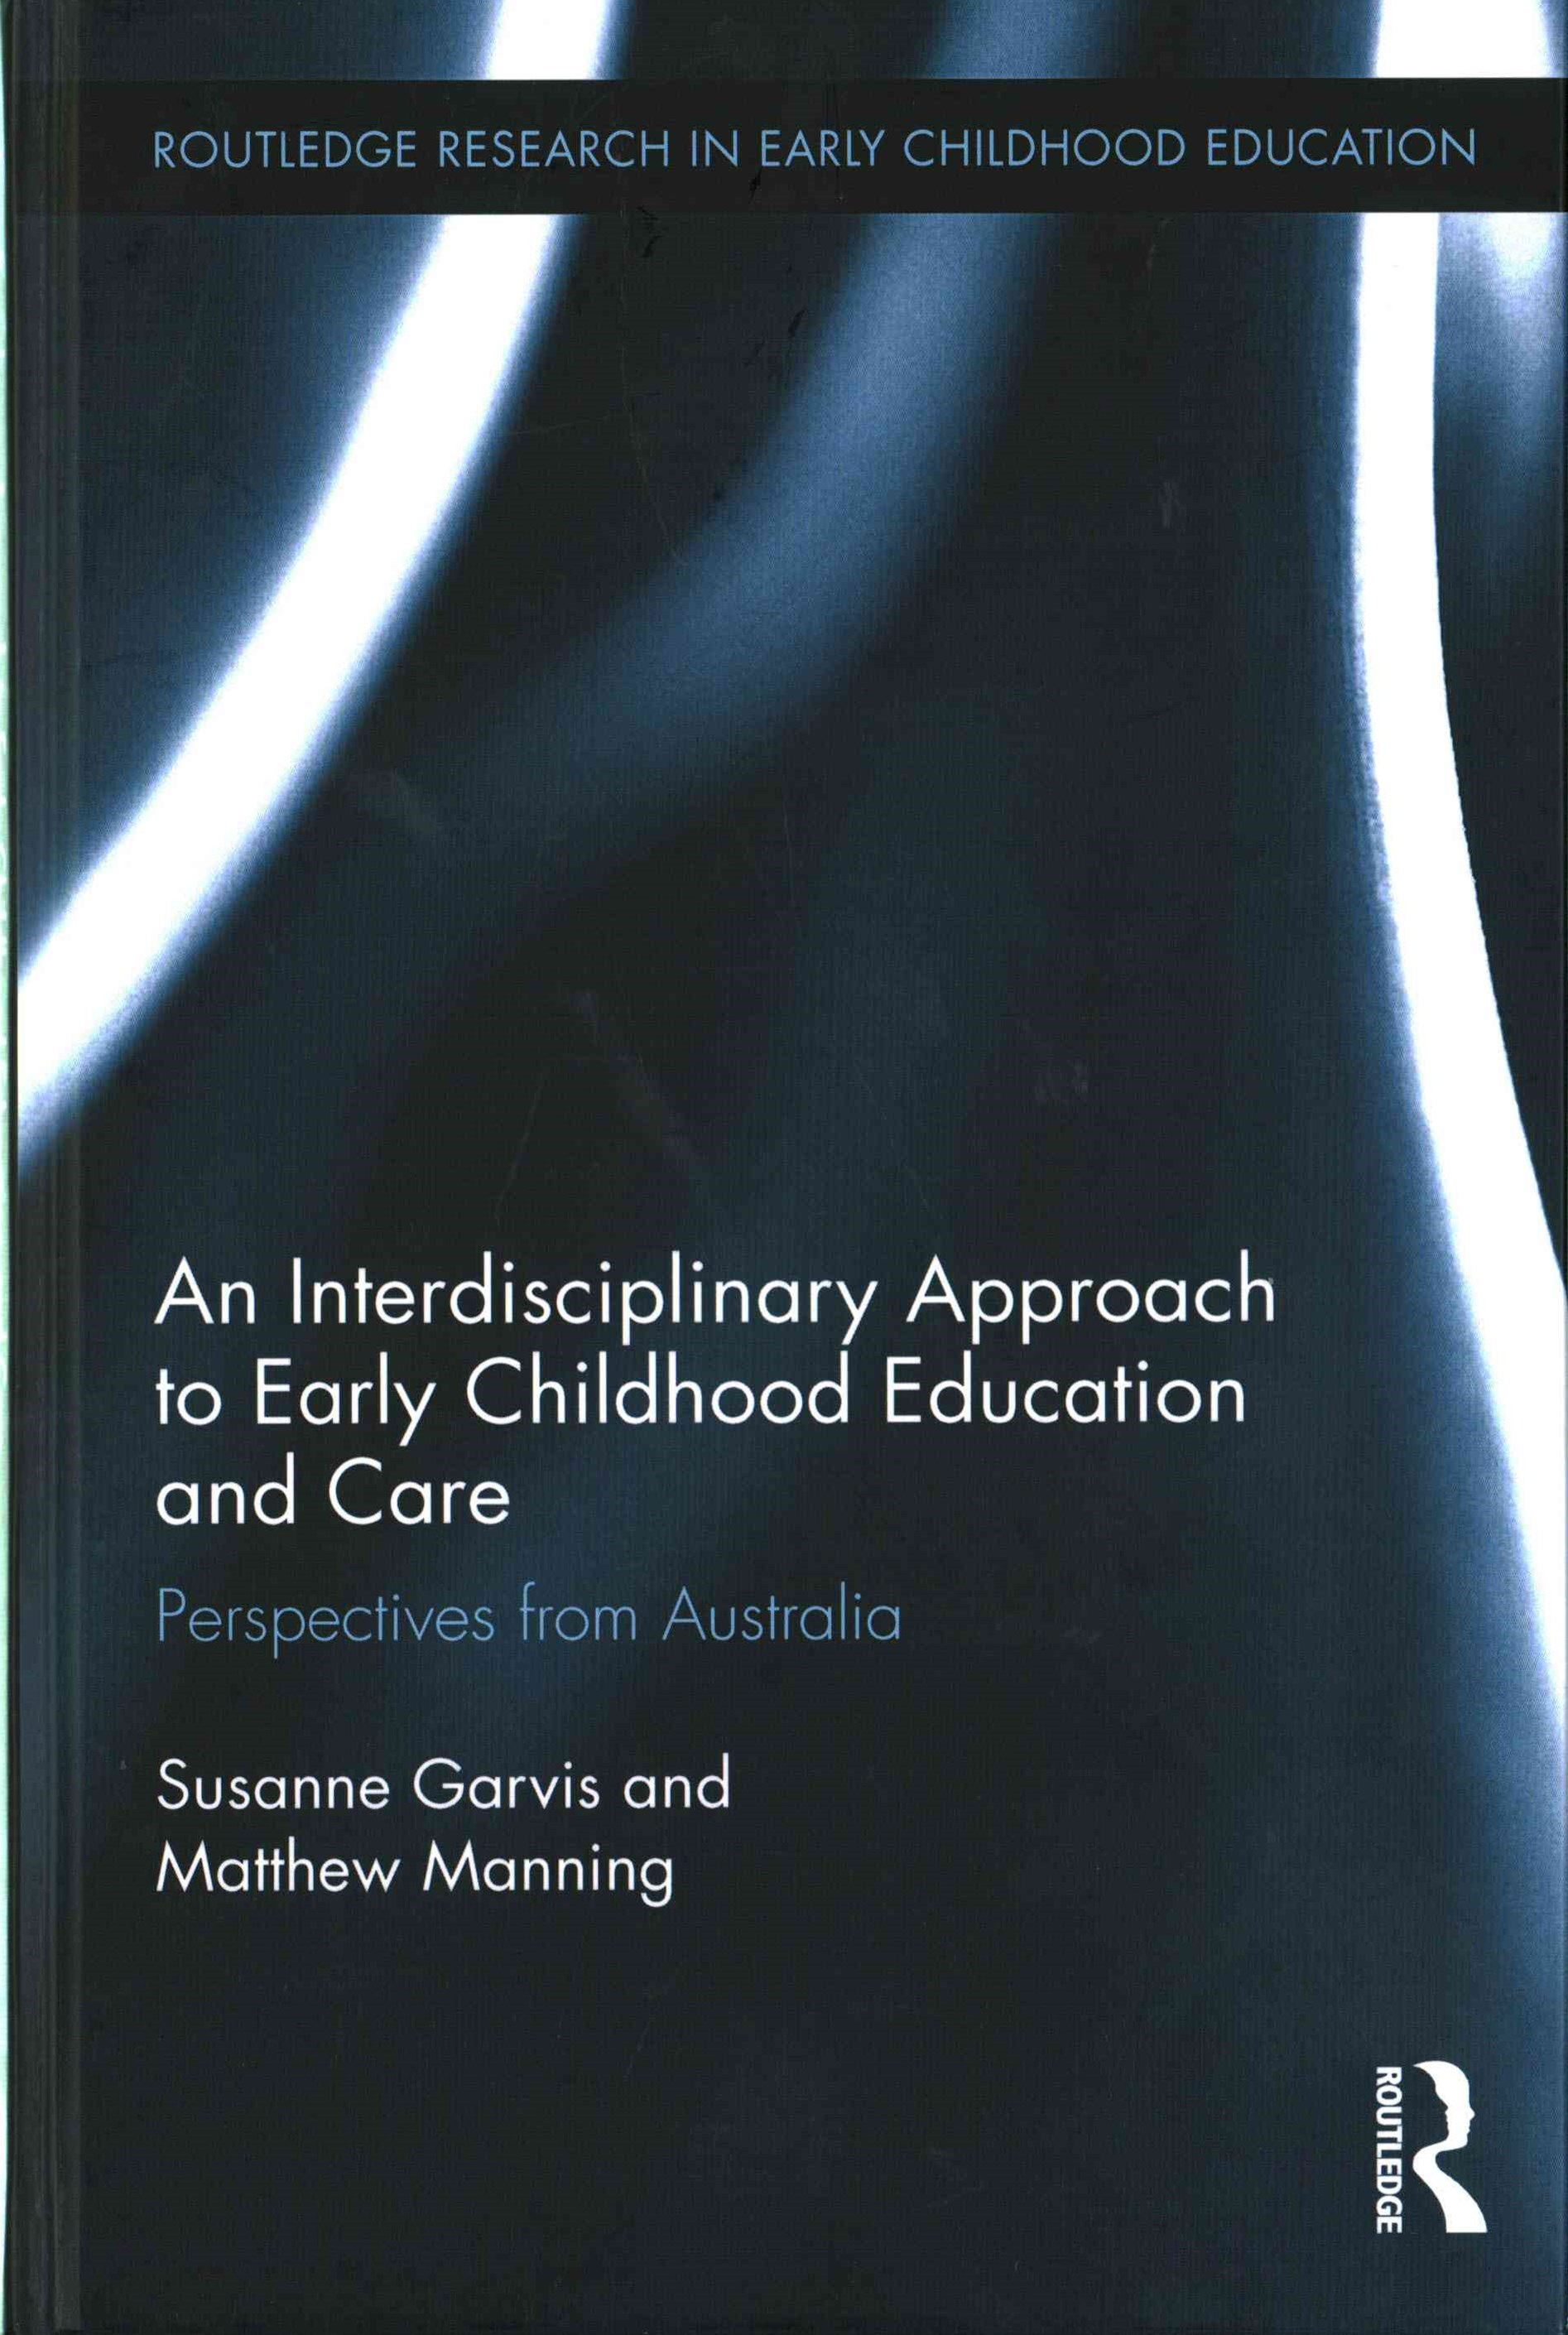 Interdisciplinary Approach to Early Childhood Education and Care